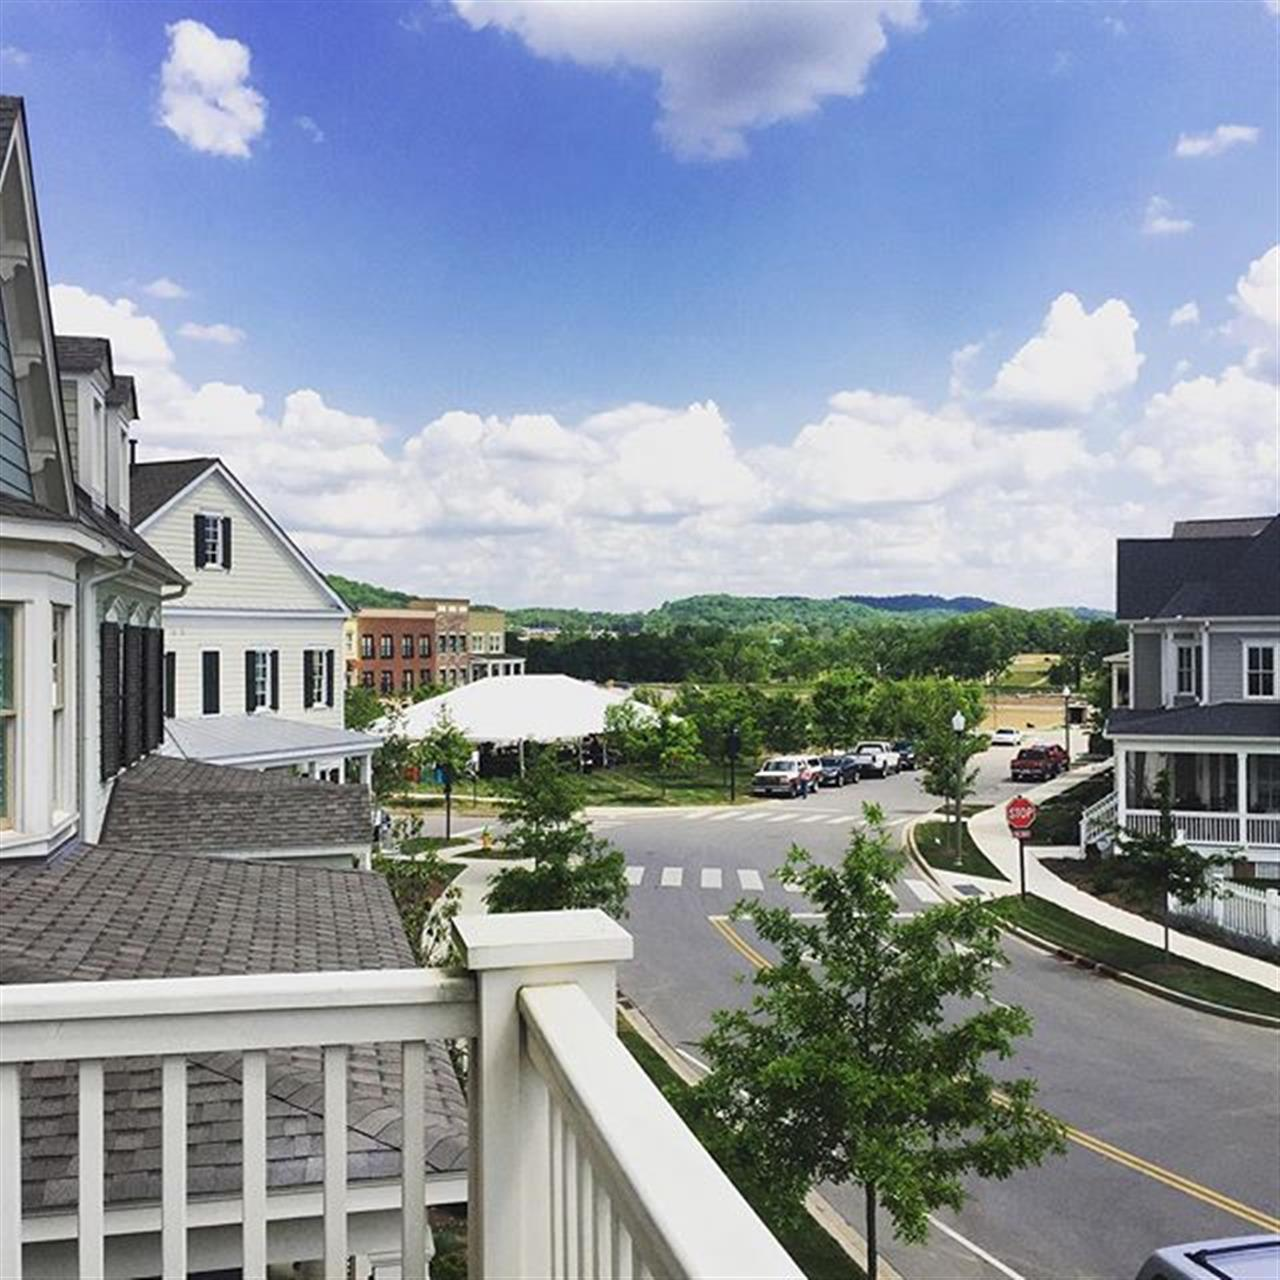 Berry Farms in Franklin, TN, is a beautiful community that features restaurants, retail, a grocery store and easy access to I-65. Berry Farms also offers condos as well as single family homes. #franklin #franklintn